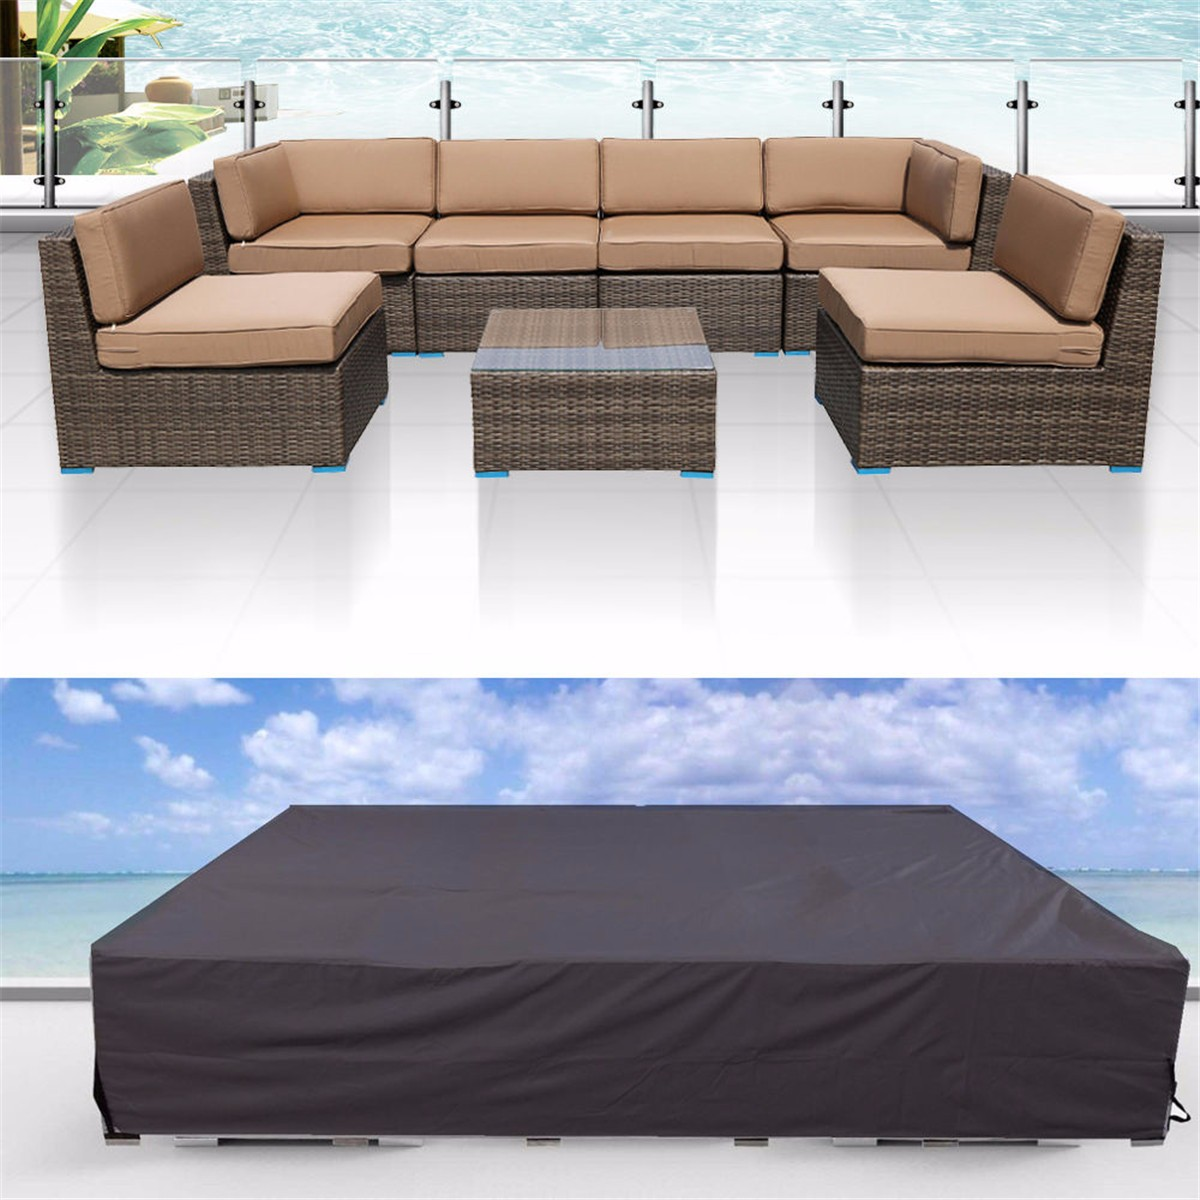 2 size black polyester pvc waterproof sofa couch table for Outdoor sectional sofa dimensions